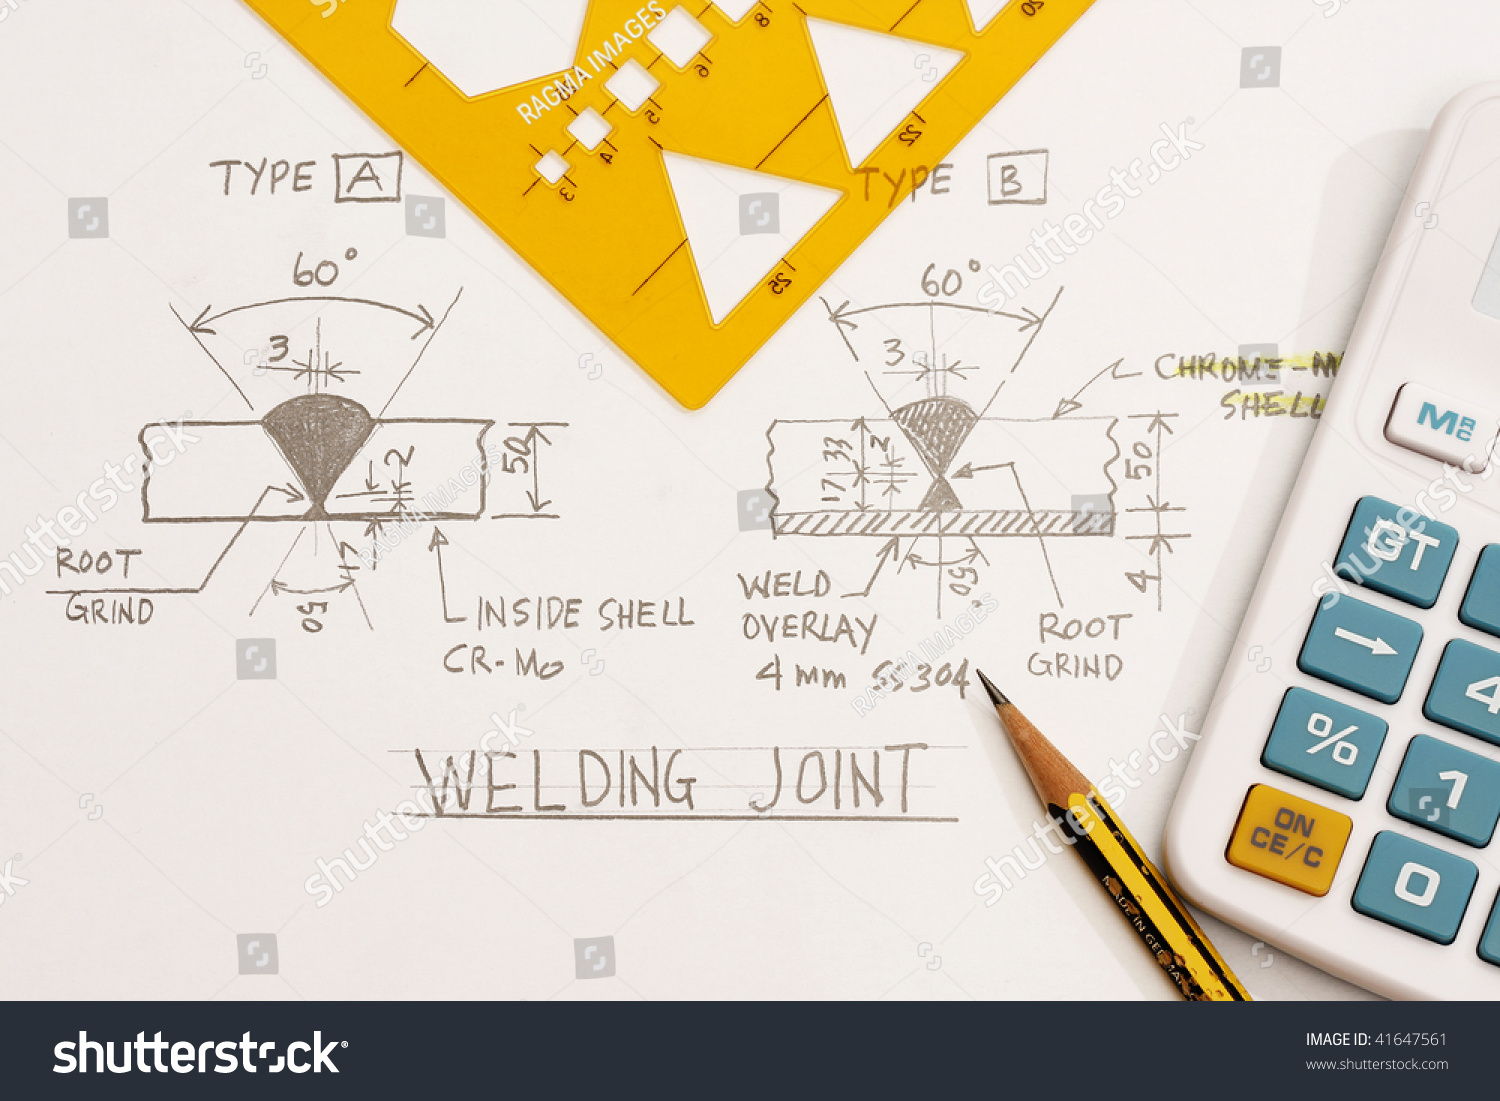 Welding Joint Details Many Uses Oil Stock Photo Edit Now 41647561 Diagram Welcome To Shutterstock